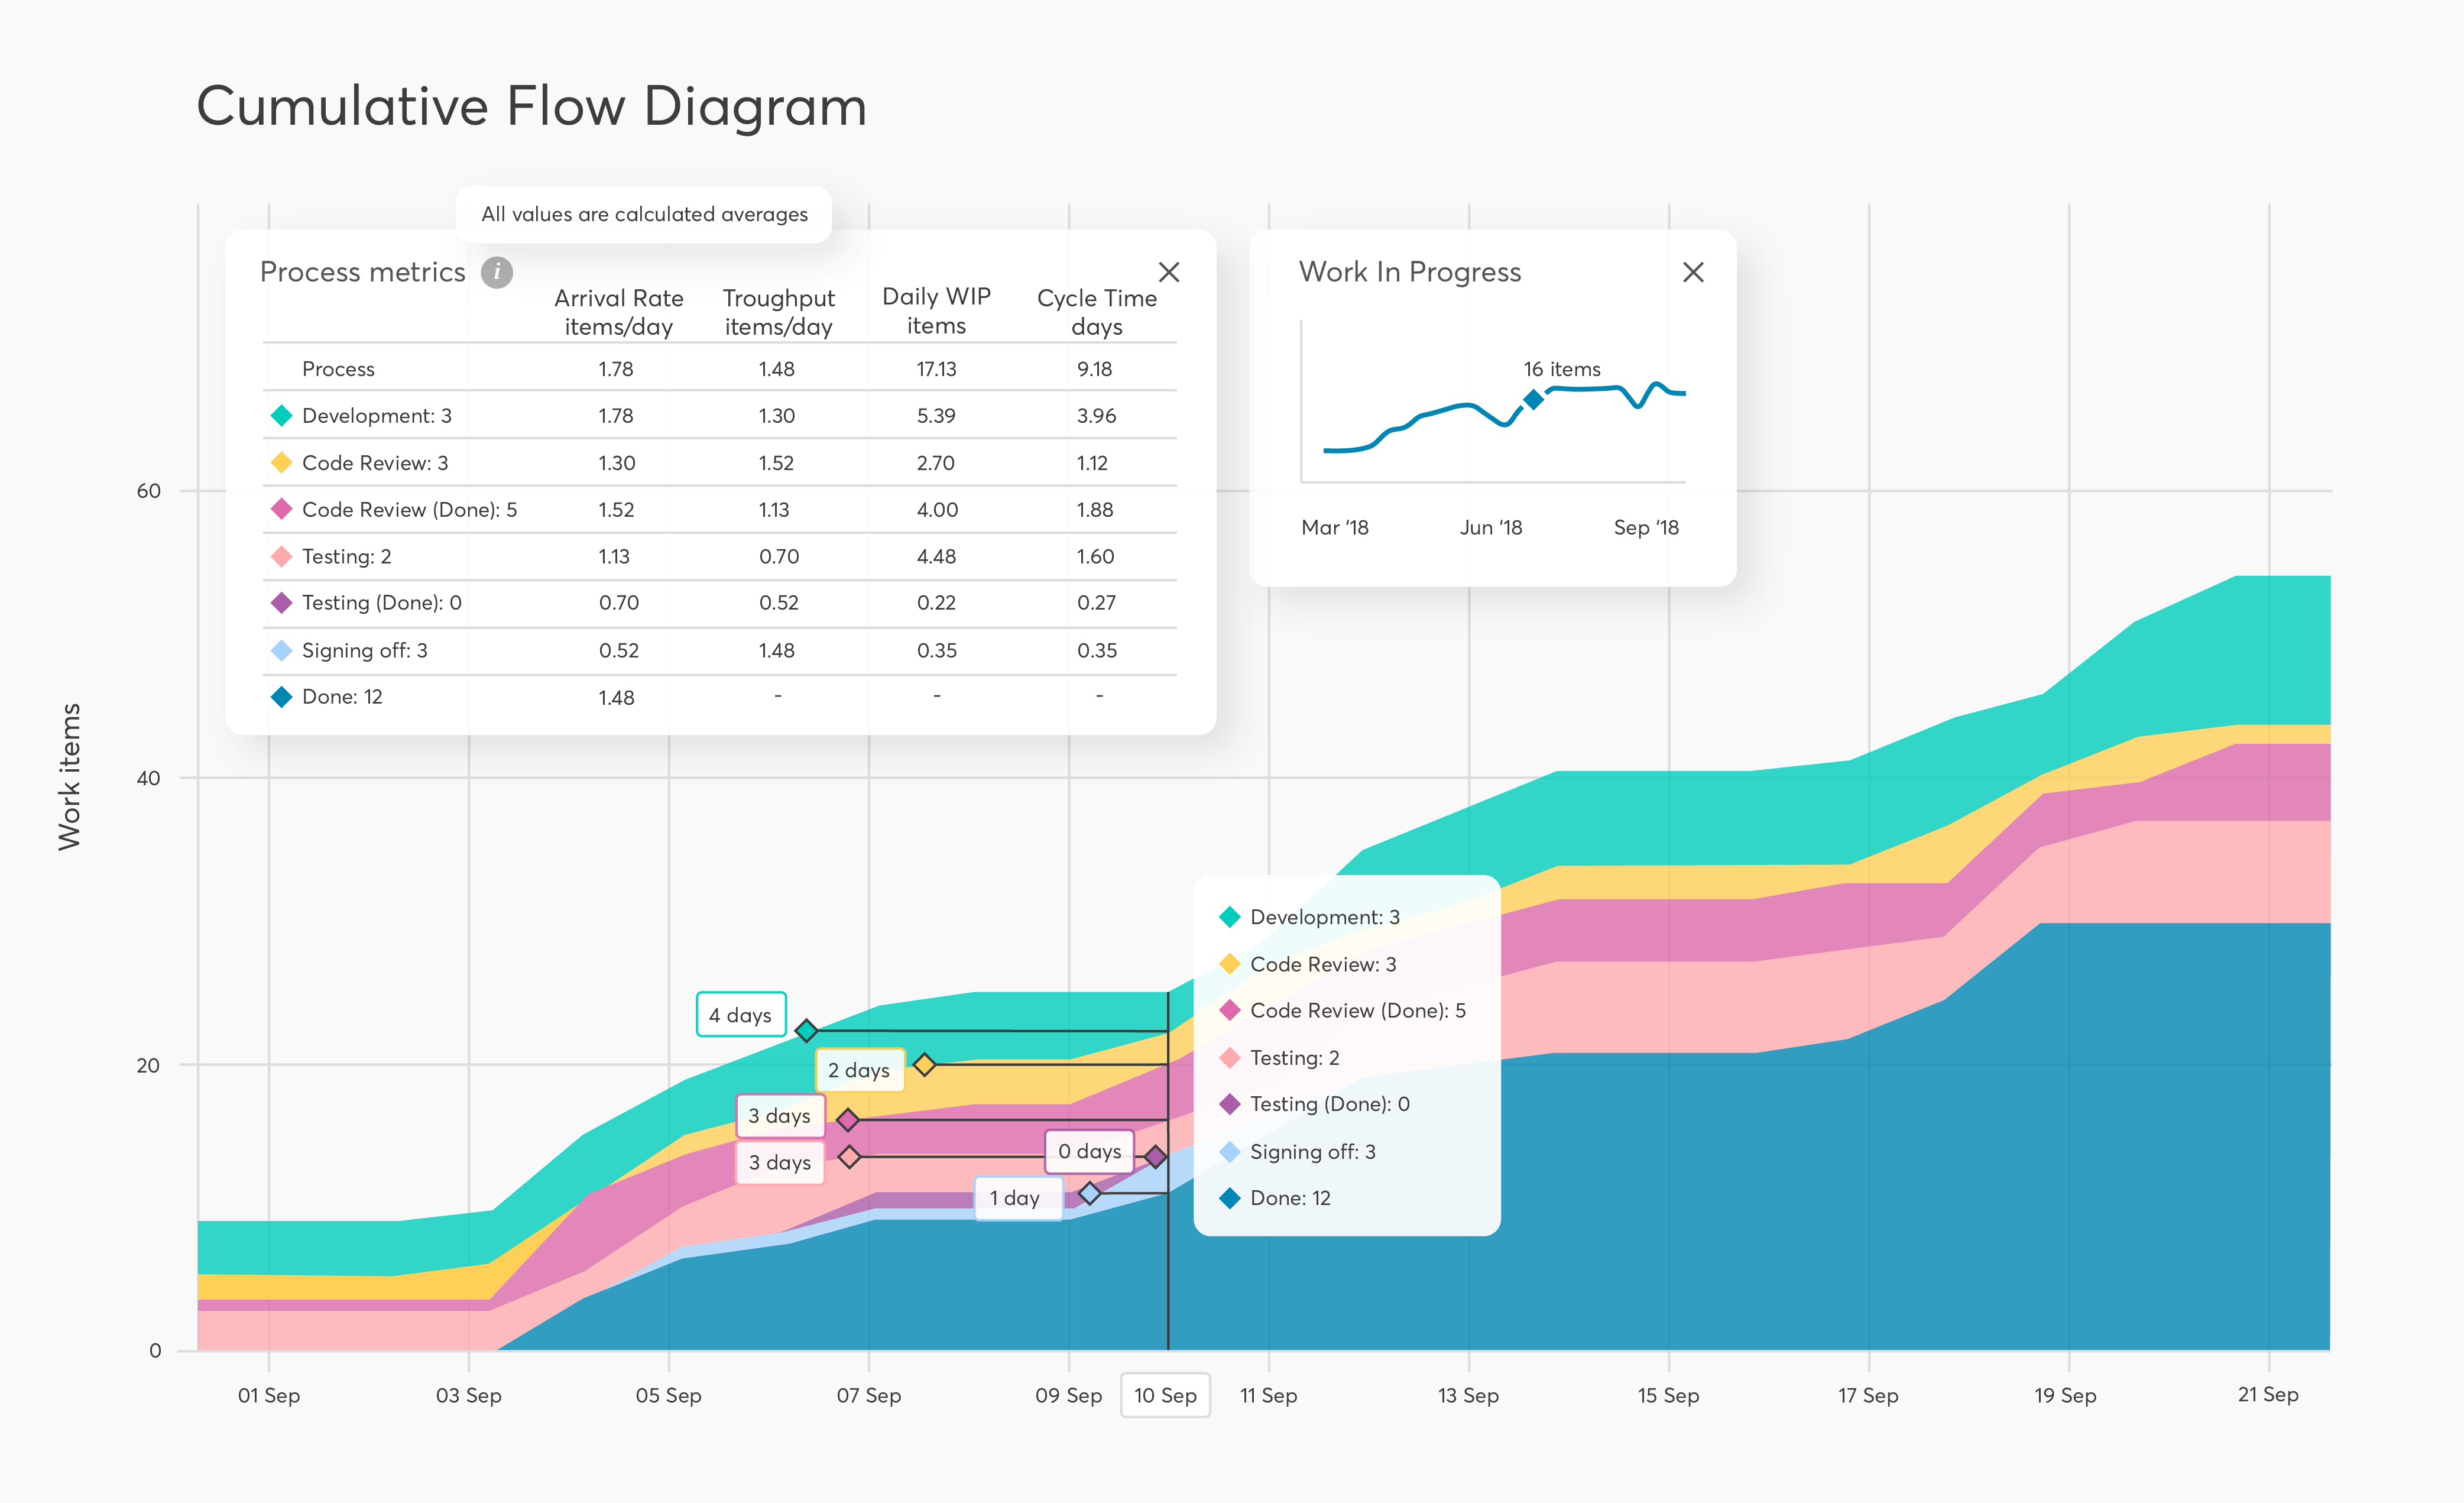 Cumulative flow diagram with details